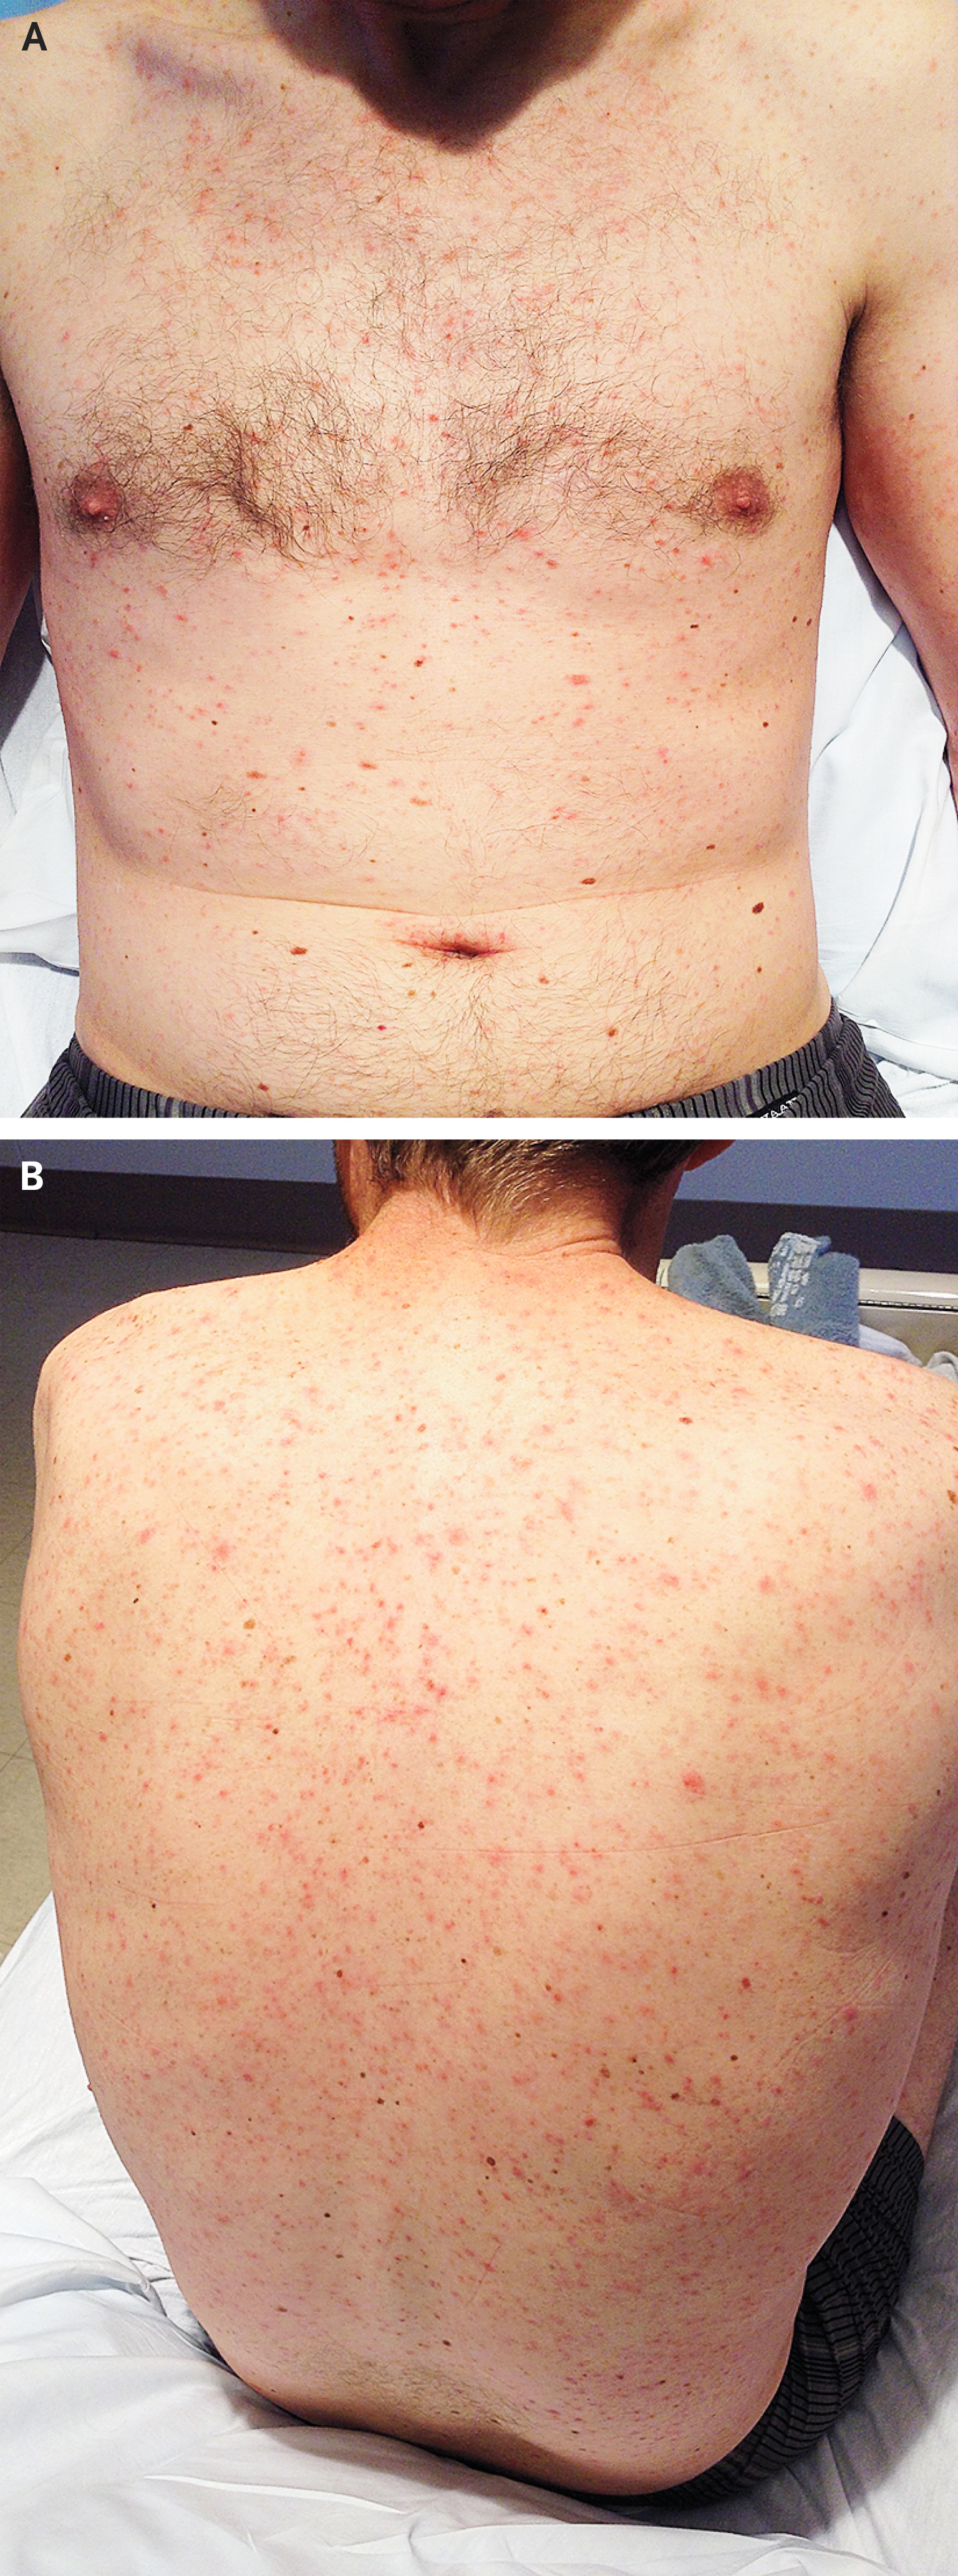 Case Challenge — A Man with Fevers, Rash, Pancytopenia, and